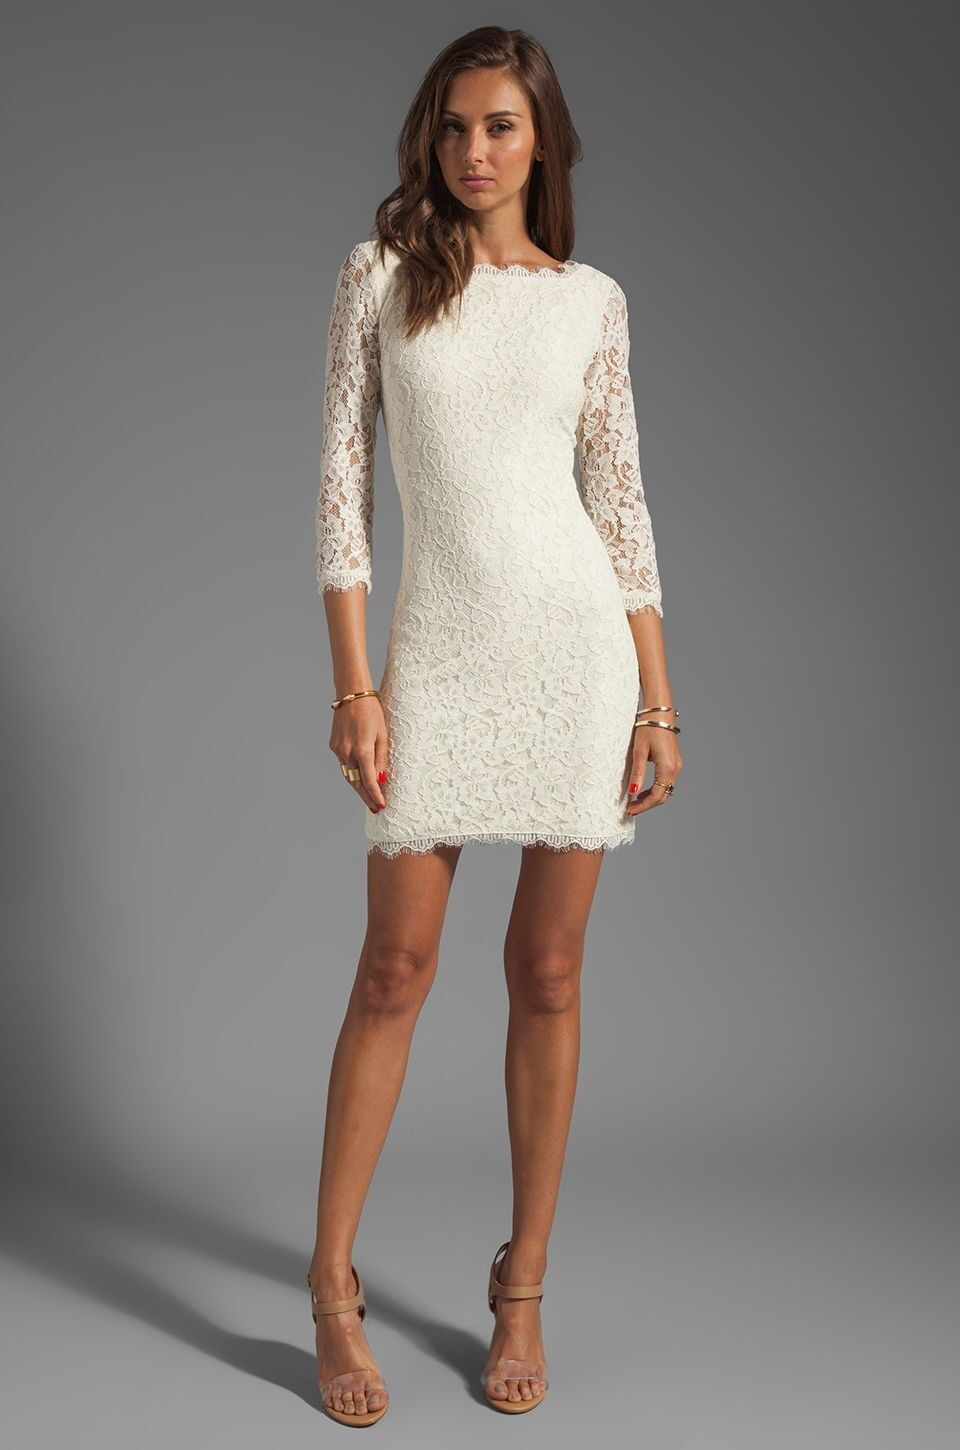 NEW Authentic DVF Diane von Furstenberg ZARITA Ivory Dress 8 10 Wedding